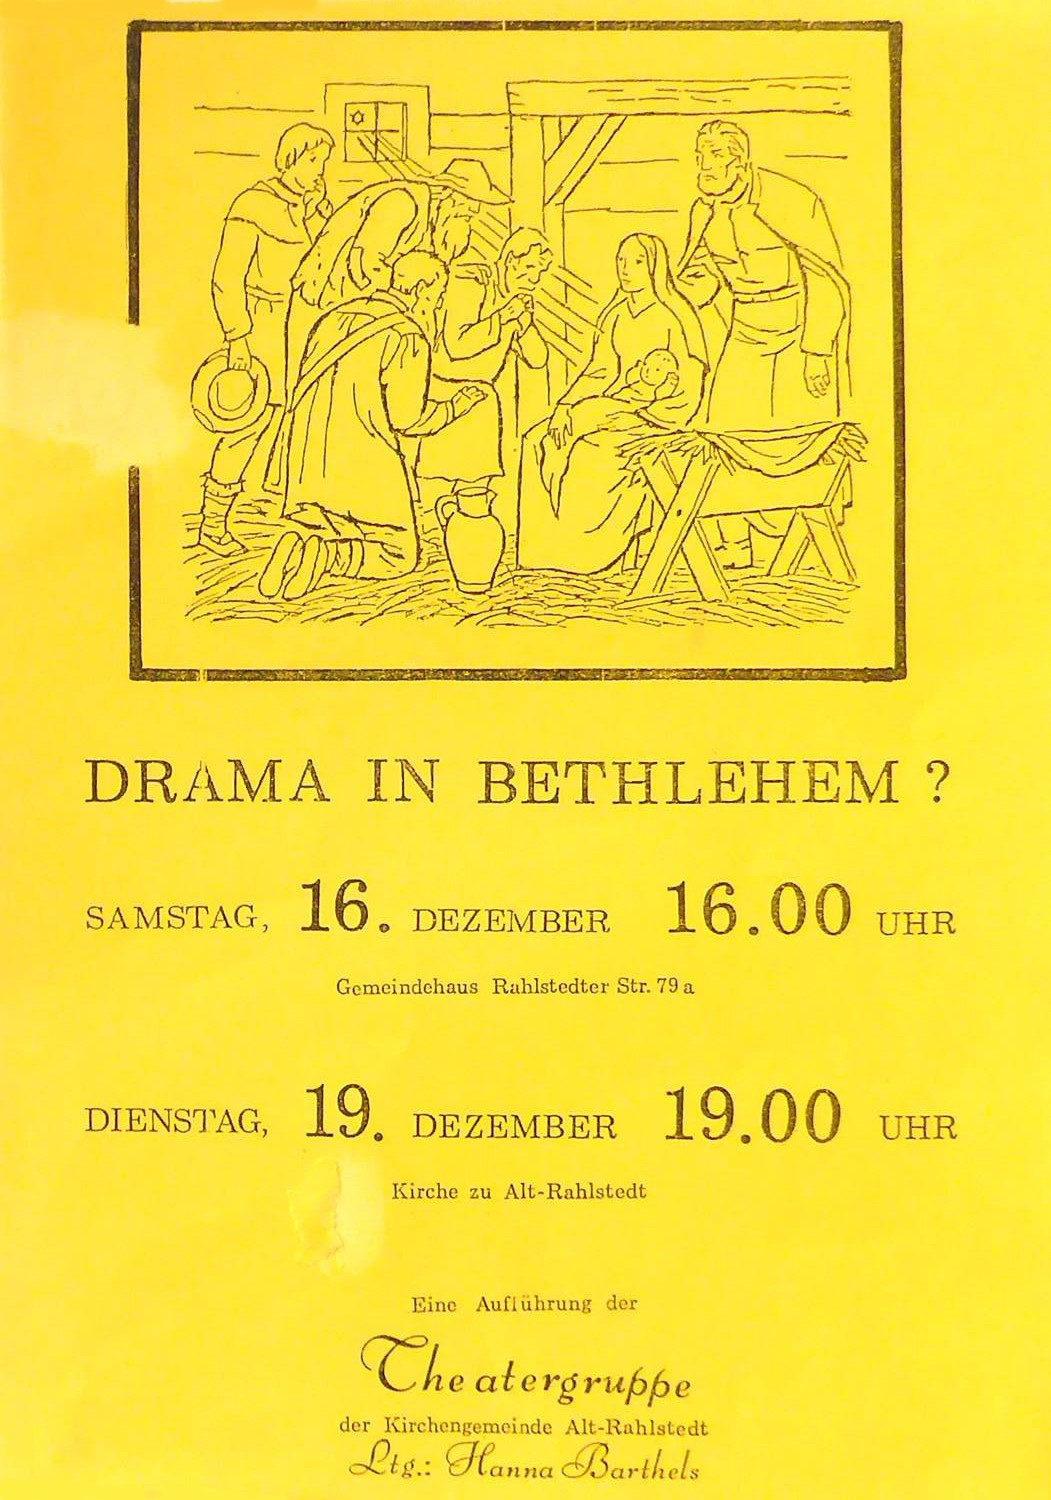 1989 - Drama in Bethlehem, H. Barthels